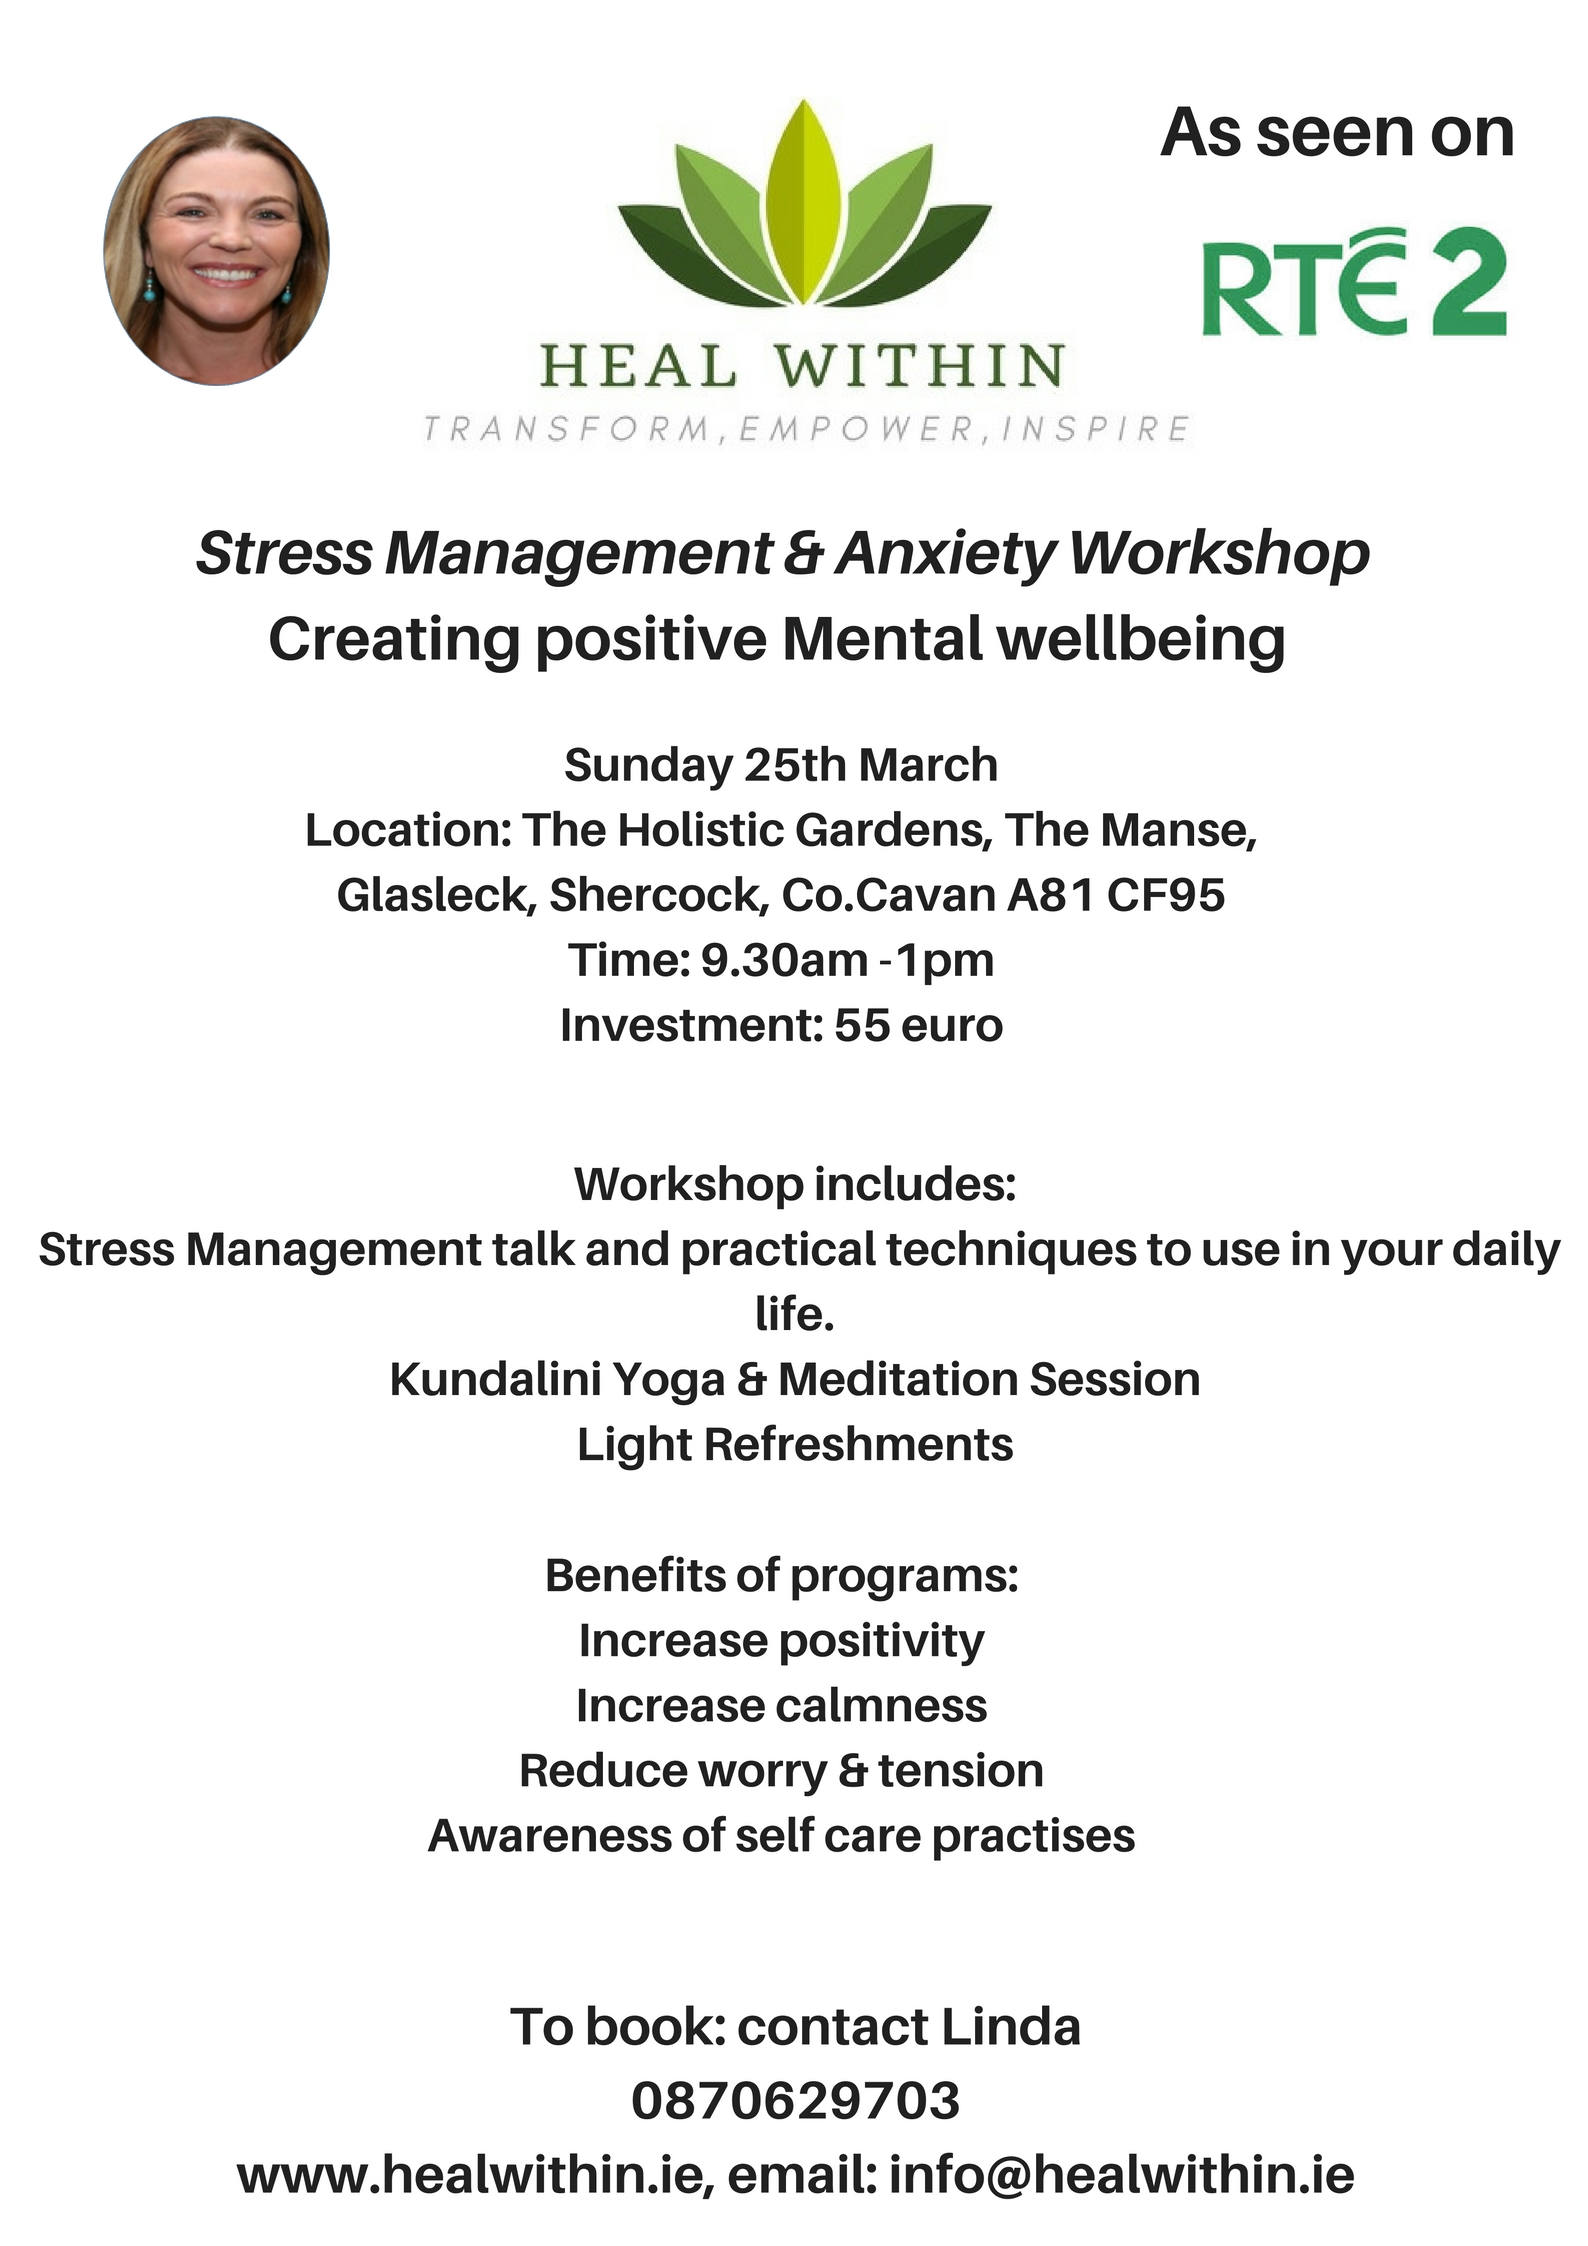 Heal Within- Stress Management & Anxiety Workshop Sunday March 25th 9.30-1pm